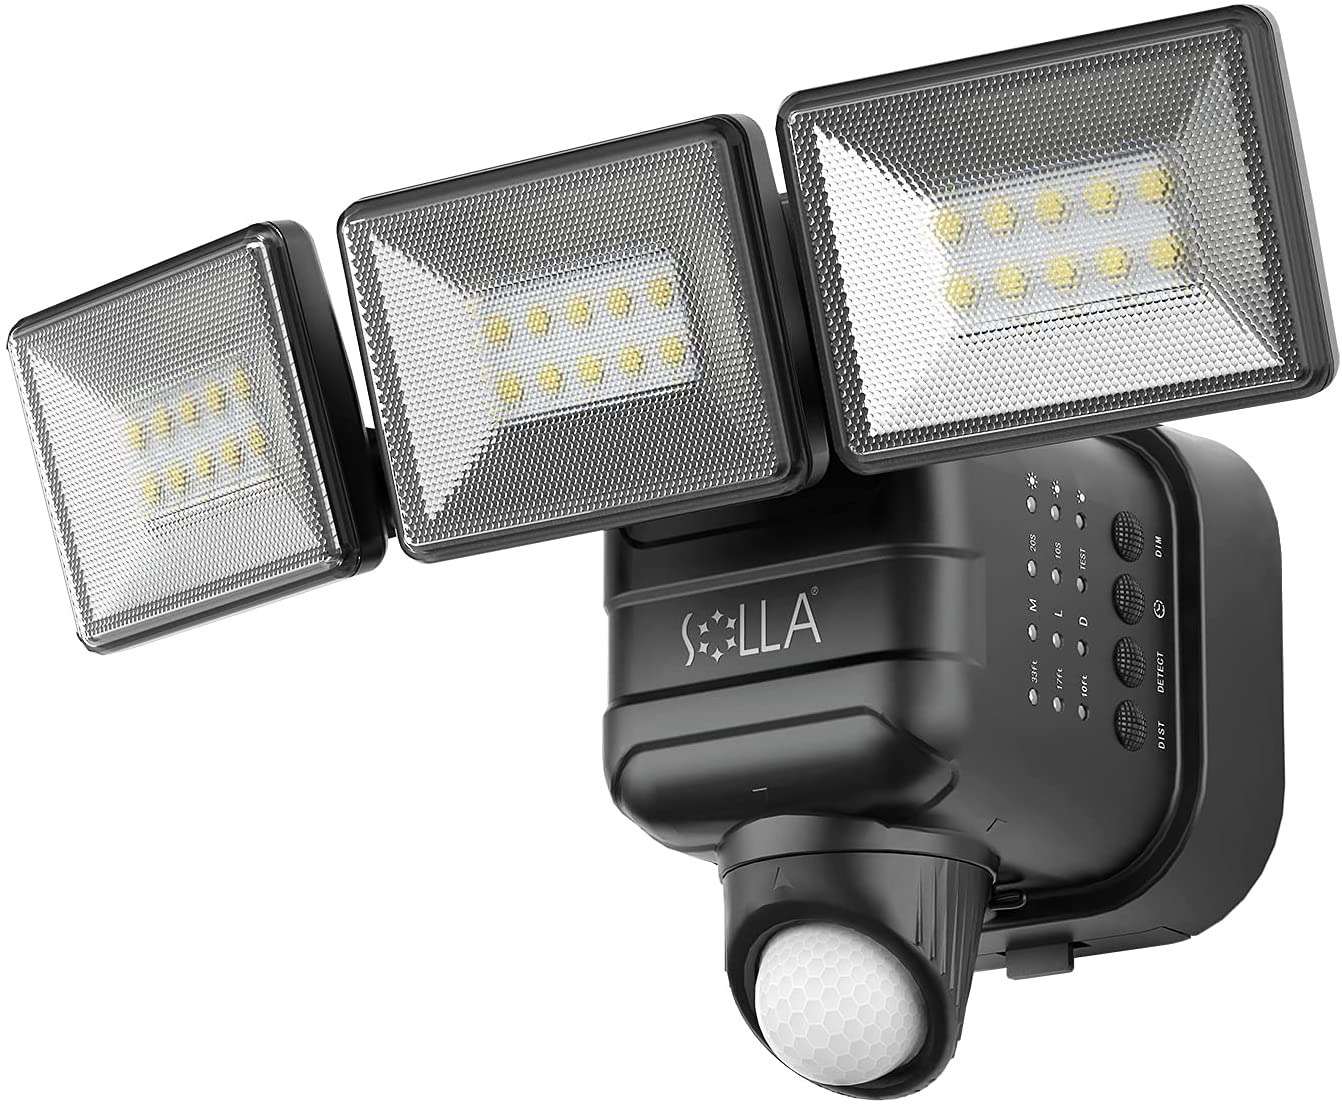 Outdoor Motion Sensor Light Free Shipping New SOLLA Battery 750lm Financial sales sale Operat Wireless